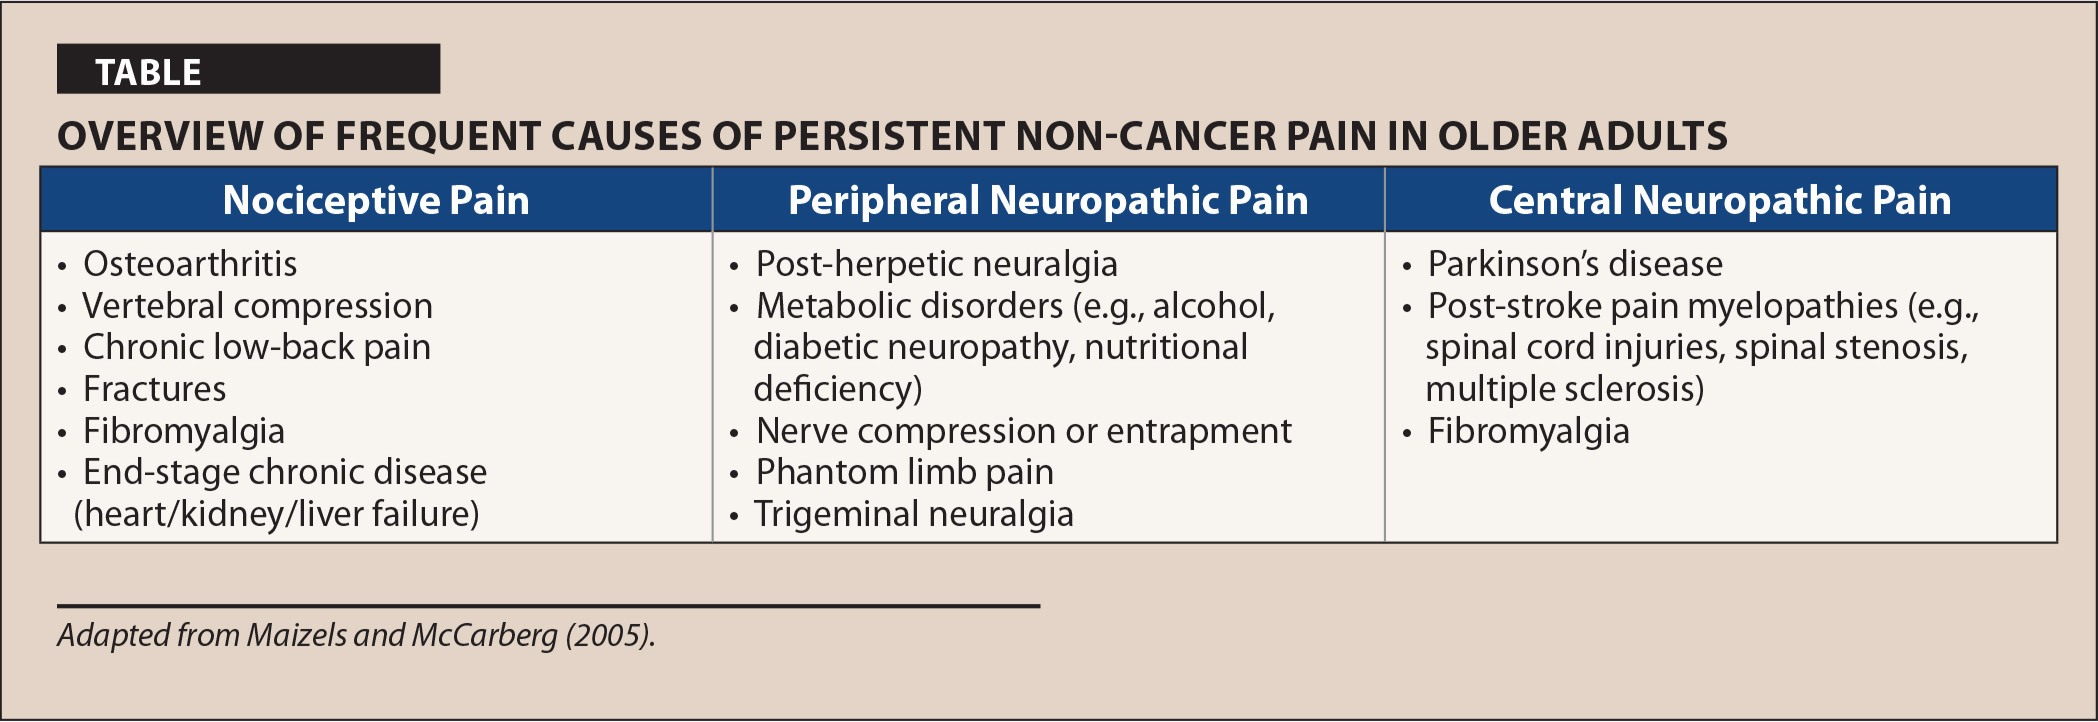 Overview of Frequent Causes of Persistent Non-Cancer Pain in Older Adults